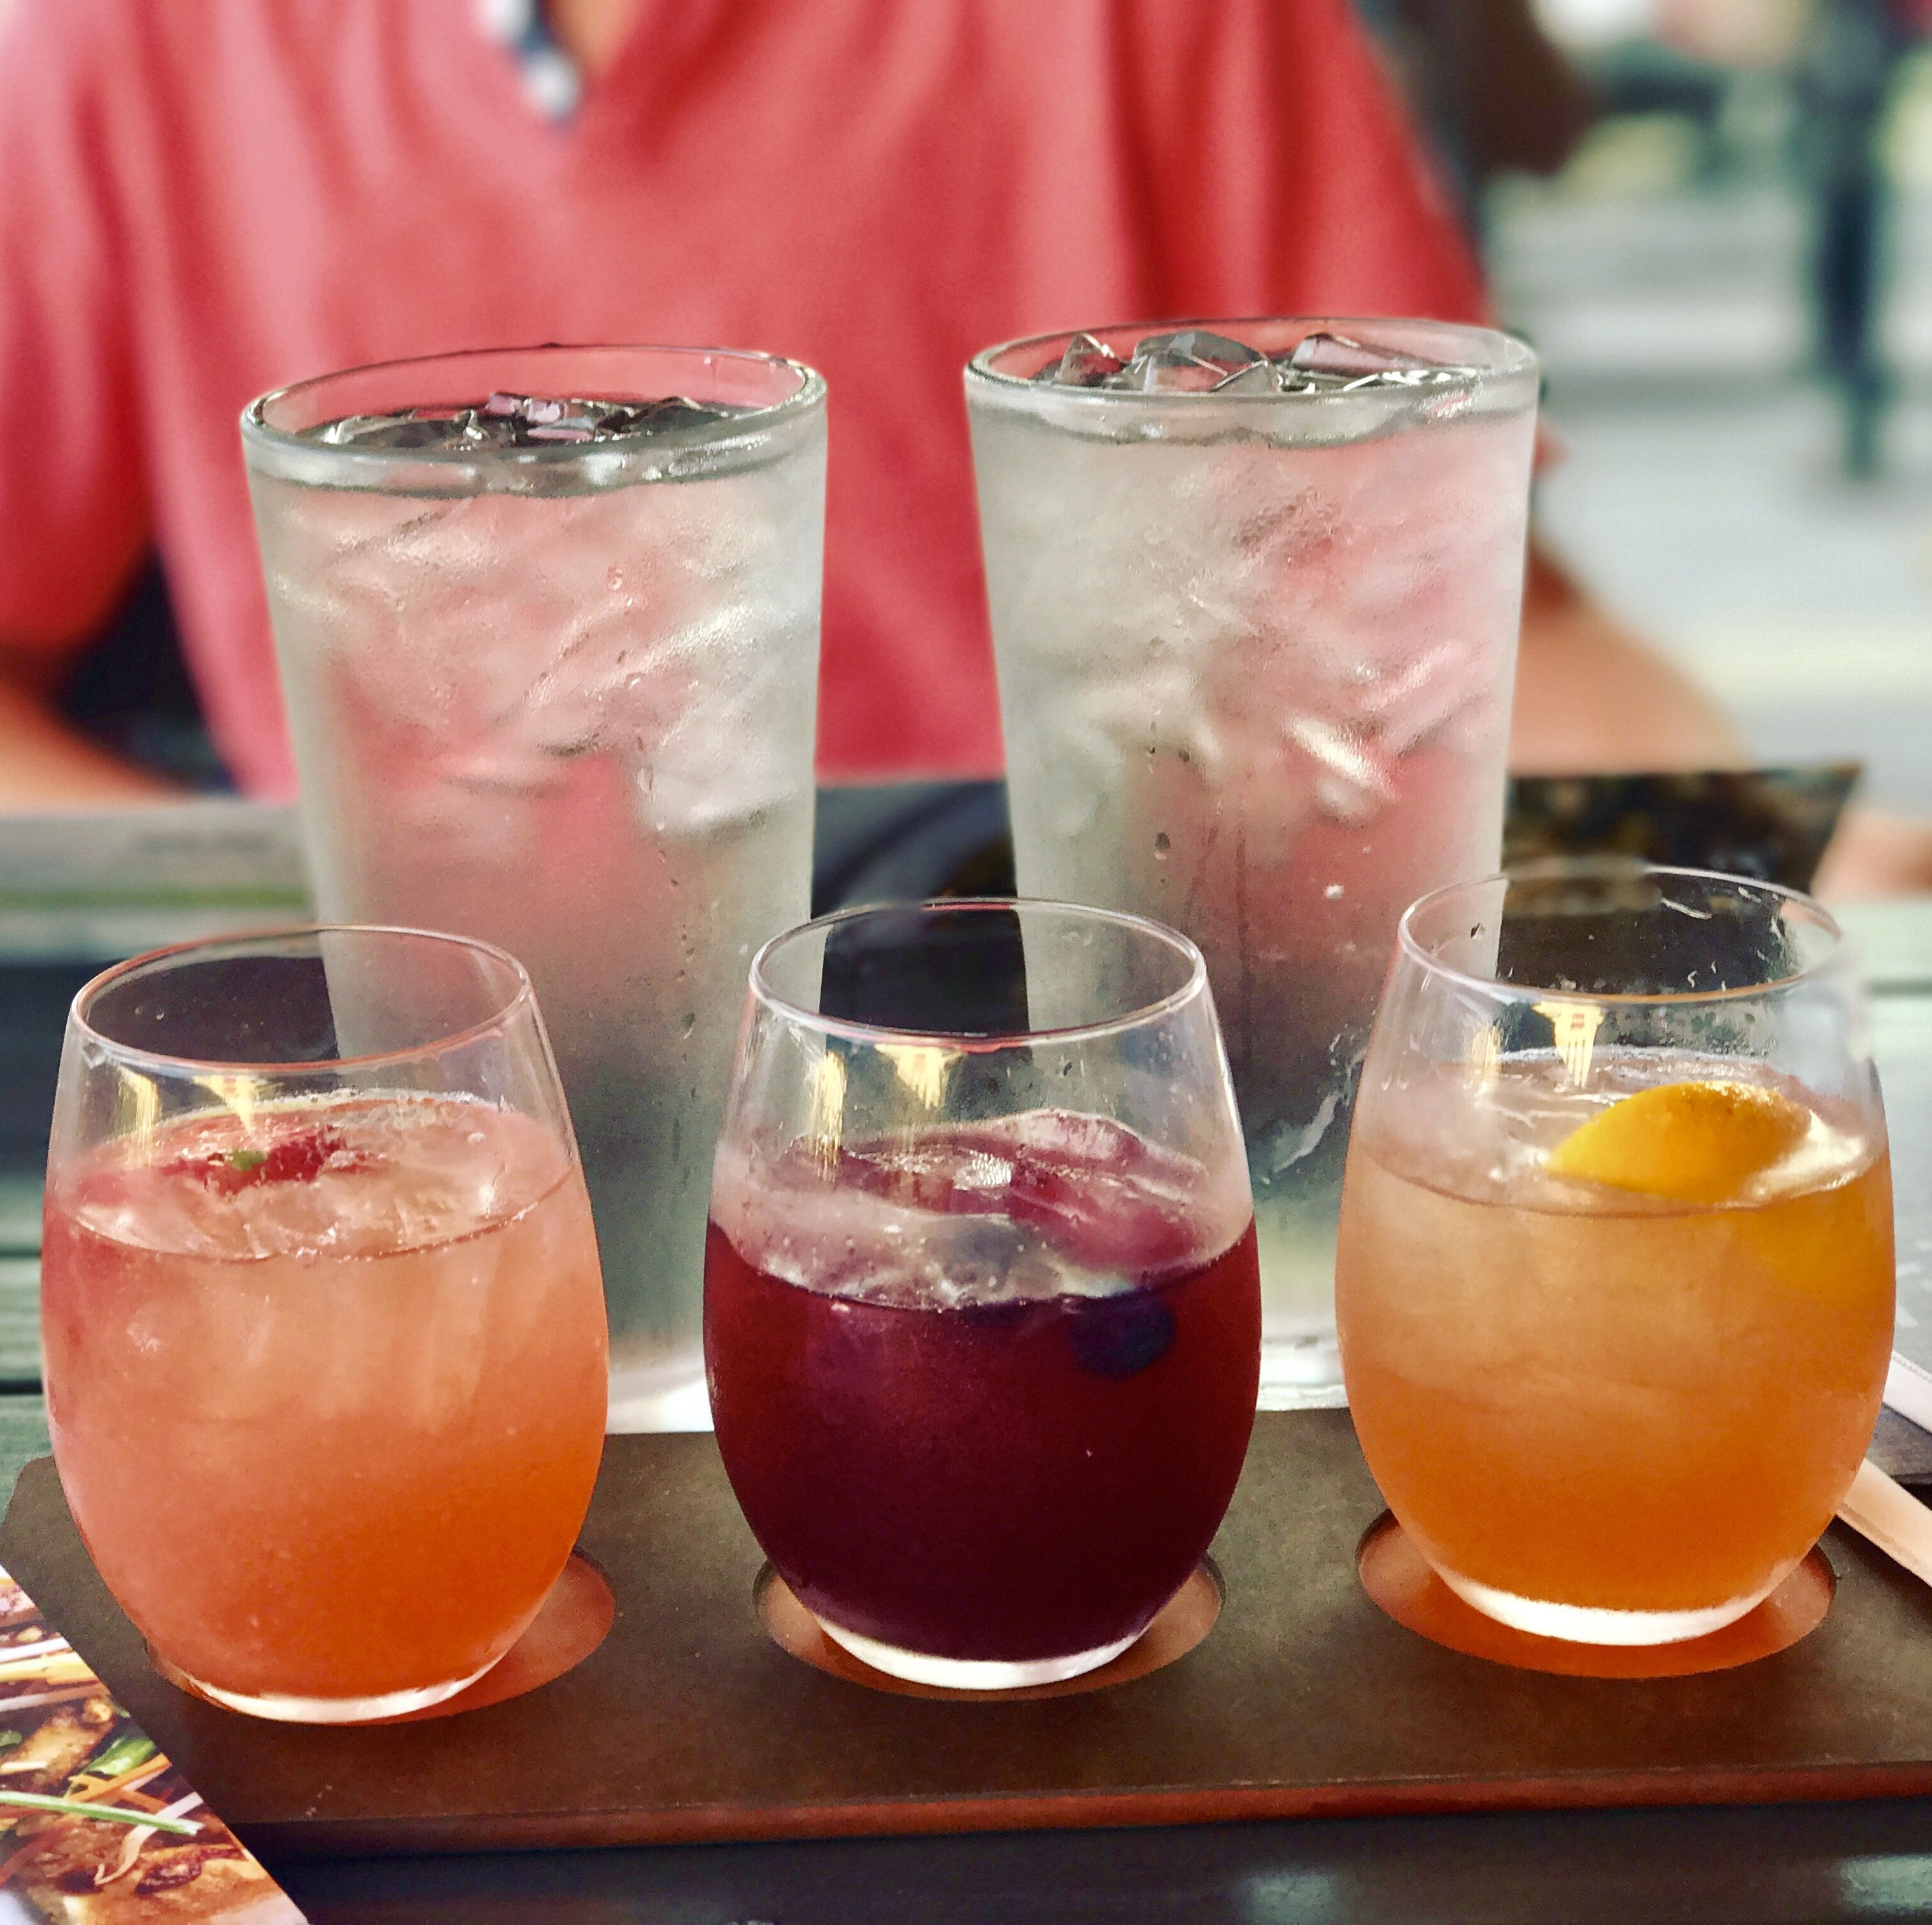 Sangria Flight From California Pizza Kitchen Beehive Sangria A Blend Of White Wine Cointreau Monin Lavender Syrup Perfe Sangria Recipes Yummy Drinks Food